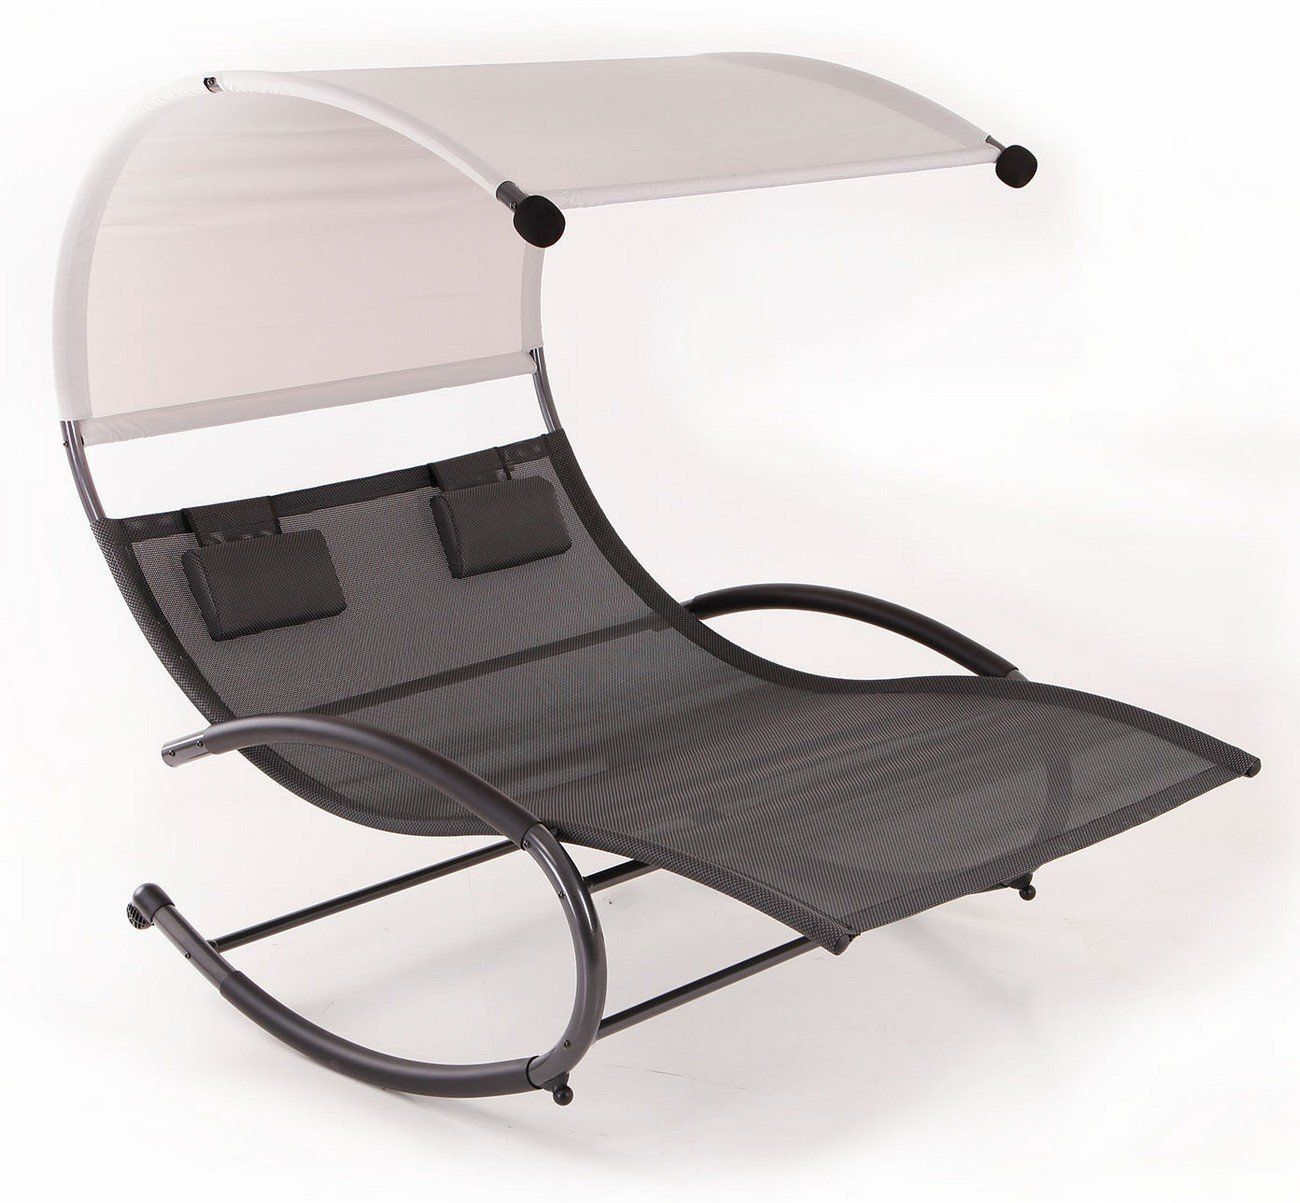 Amazoncom patio furniture Wicker Patio Amazoncom Belleze Double Chaise Rocker Patio Furniture Seat Chair Swing W Canopy Pillow Gray Patio Lawn Garden Pinterest Amazoncom Belleze Double Chaise Rocker Patio Furniture Seat Chair